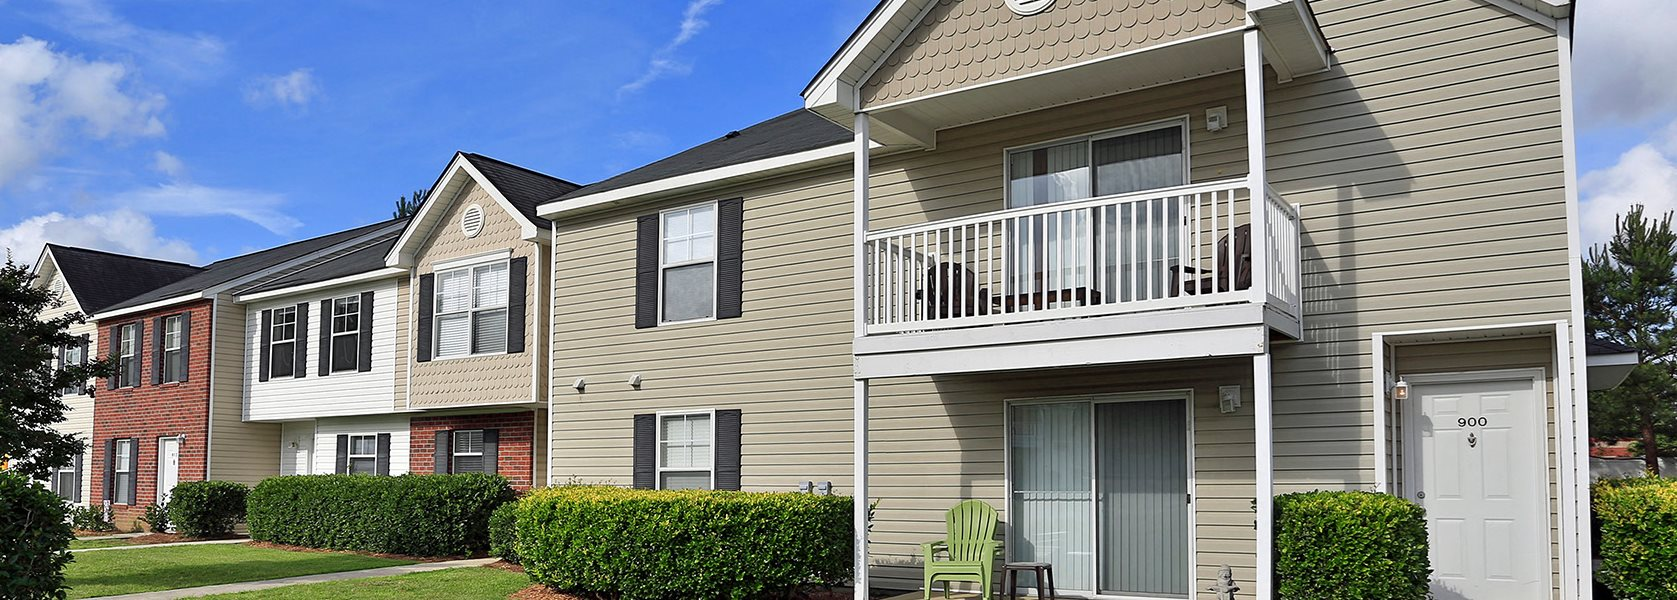 Devon Pointe Apartments And Townhomes Apartments In